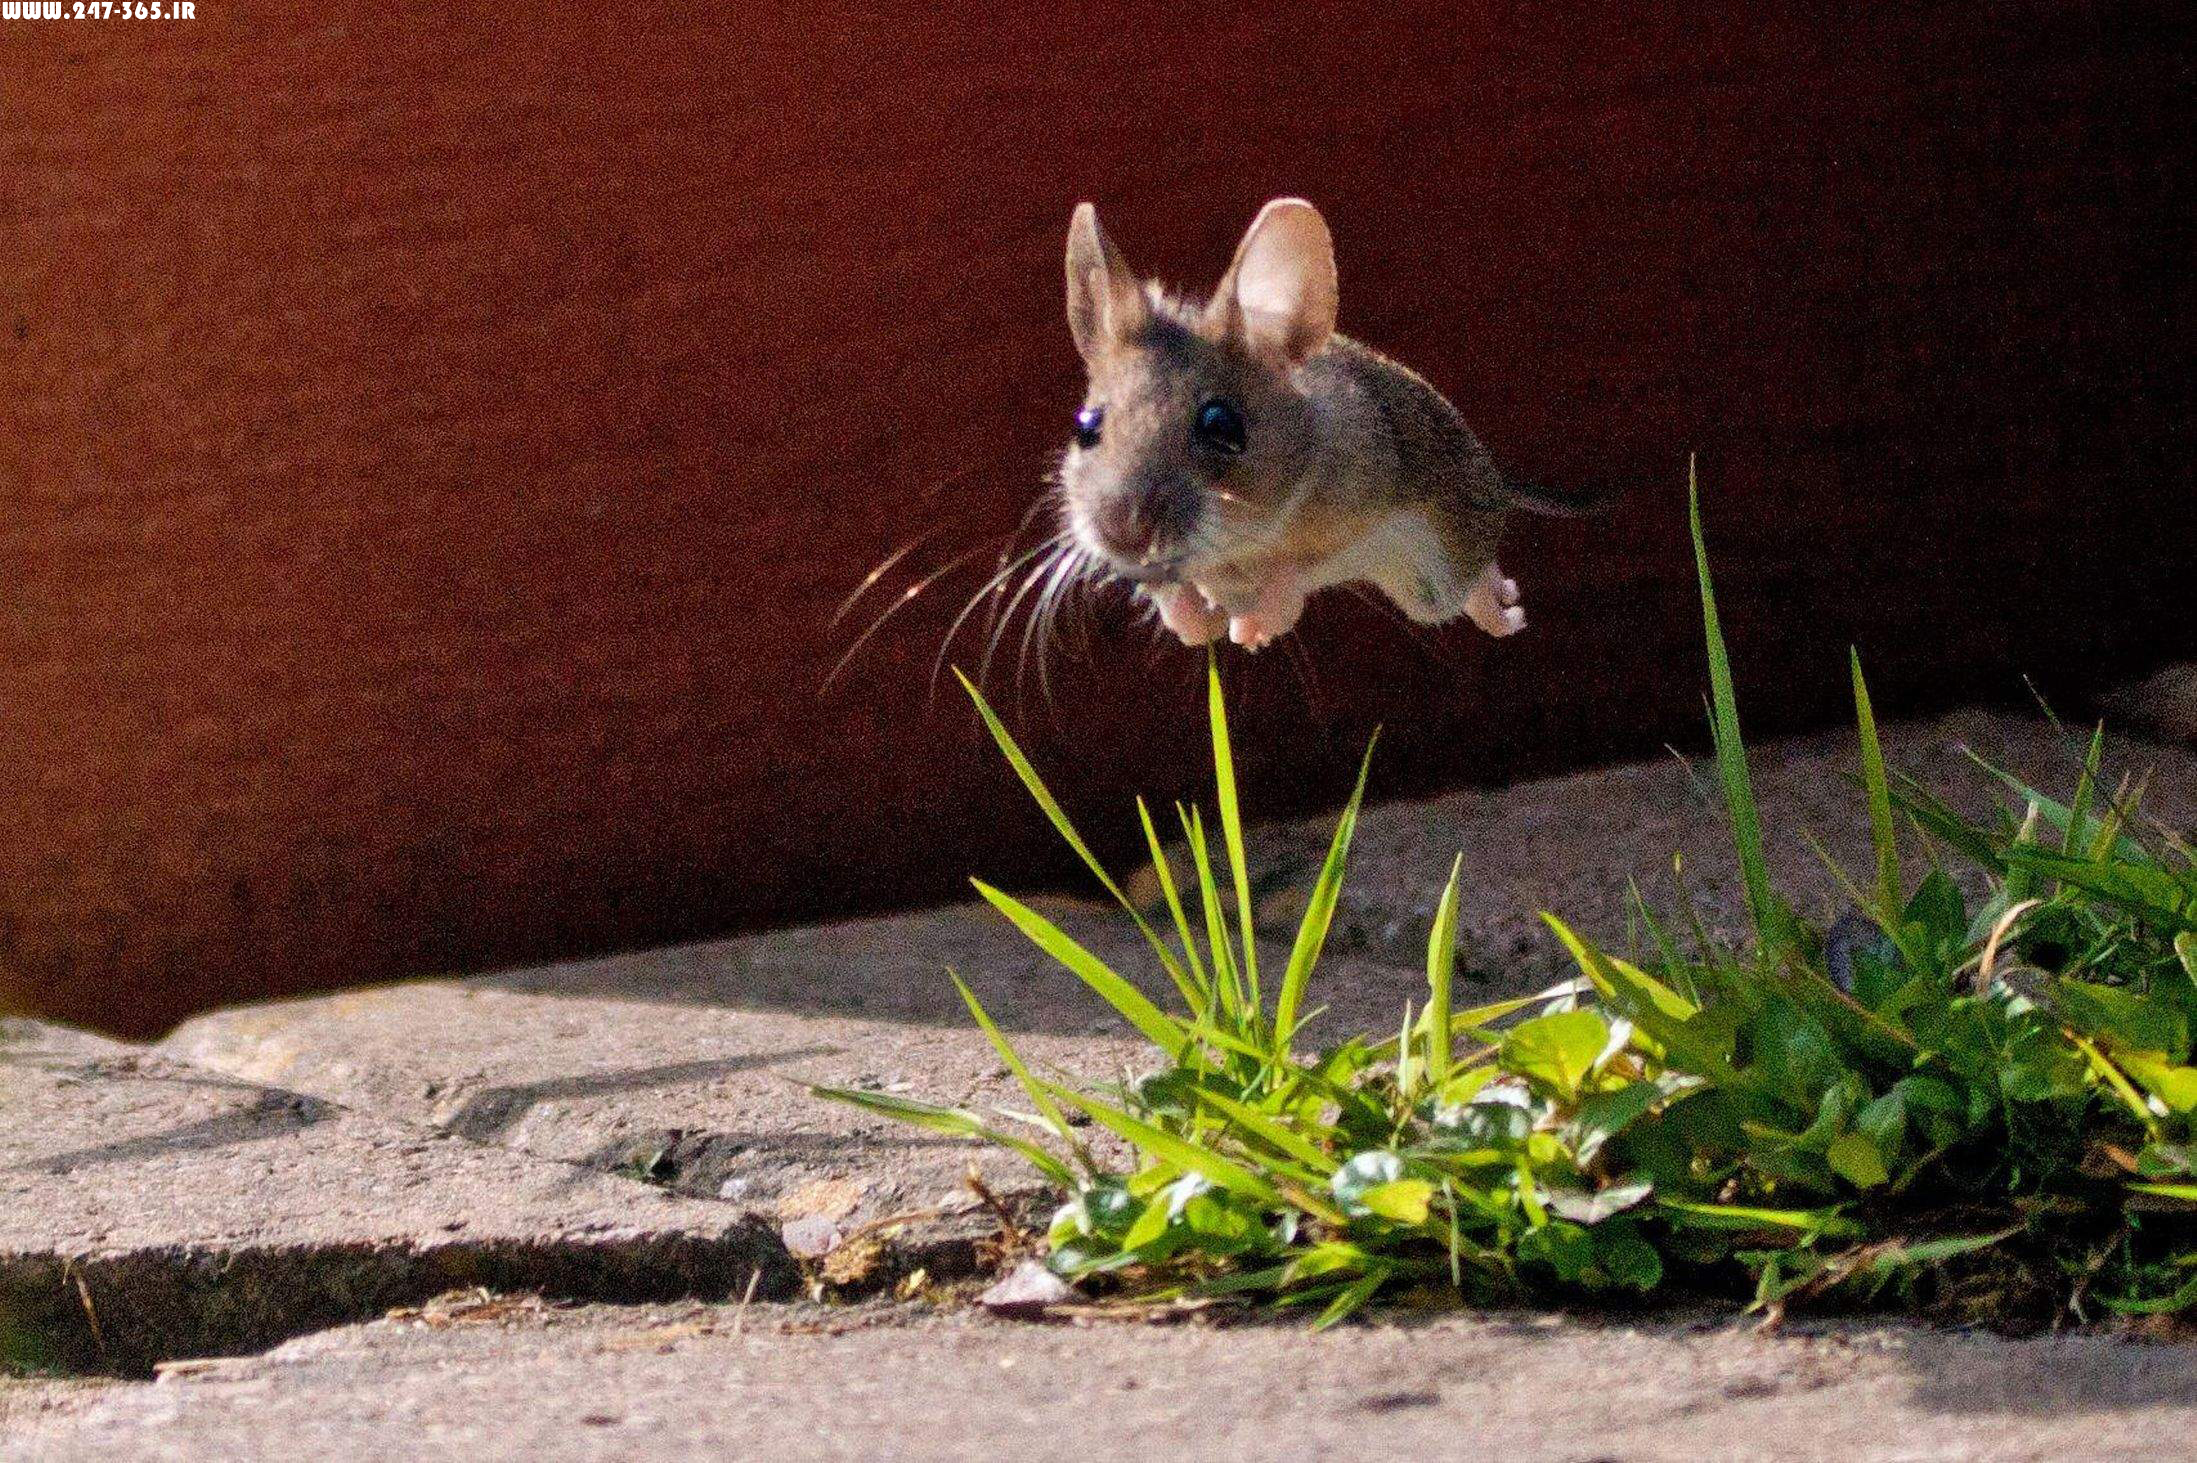 http://dl.247-365.ir/pic/tak_ax/Baby_Mouse_Jumping_Over_Grass.jpg